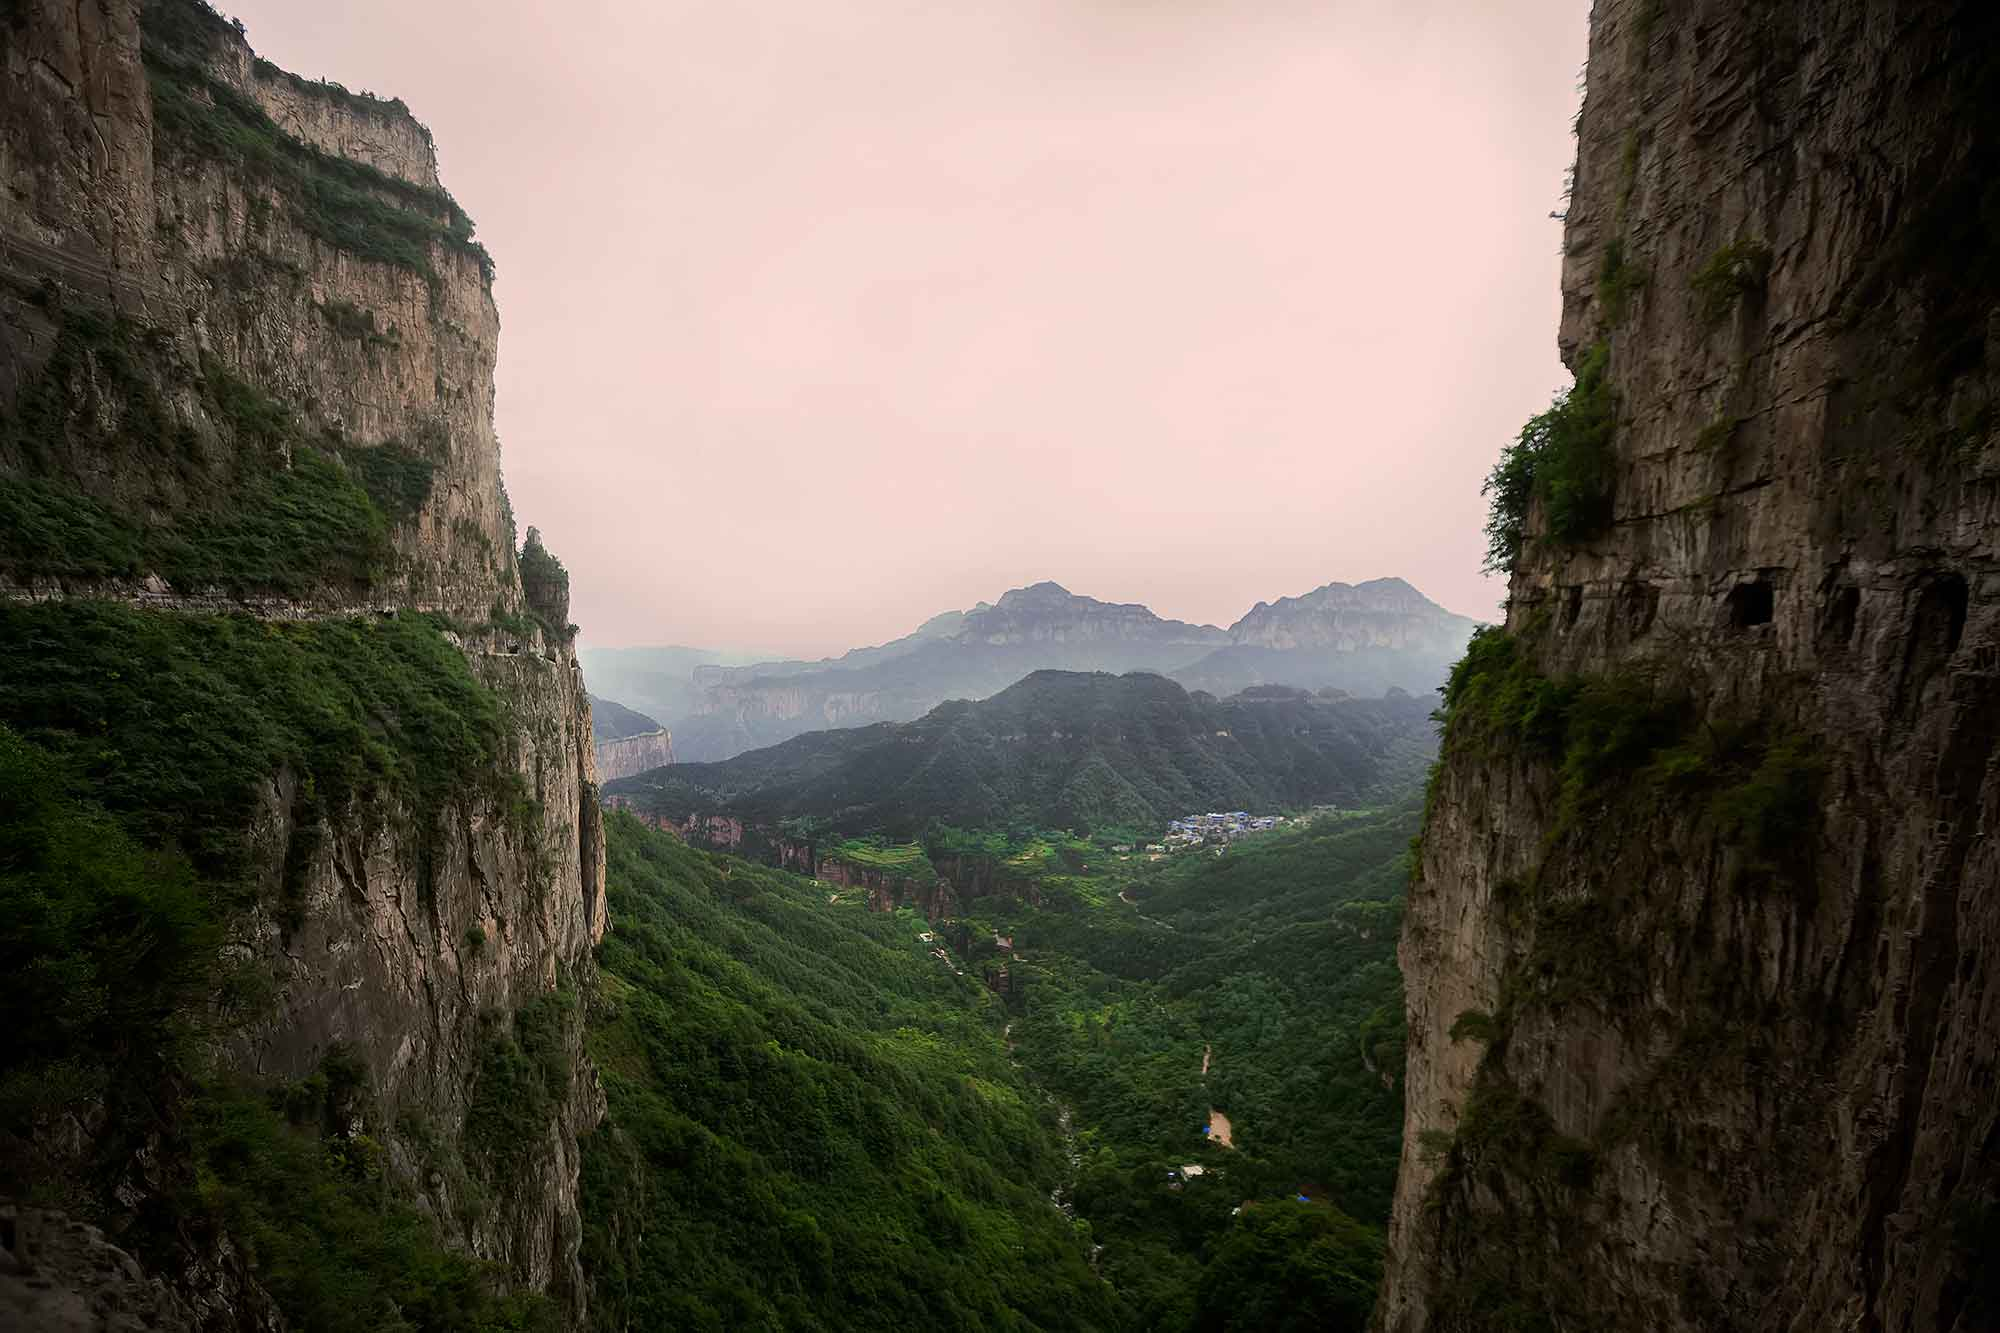 The Guoliang Tunnel Toad in the Taihang Mountains, Henan. © Ulli Maier & Nisa Maier